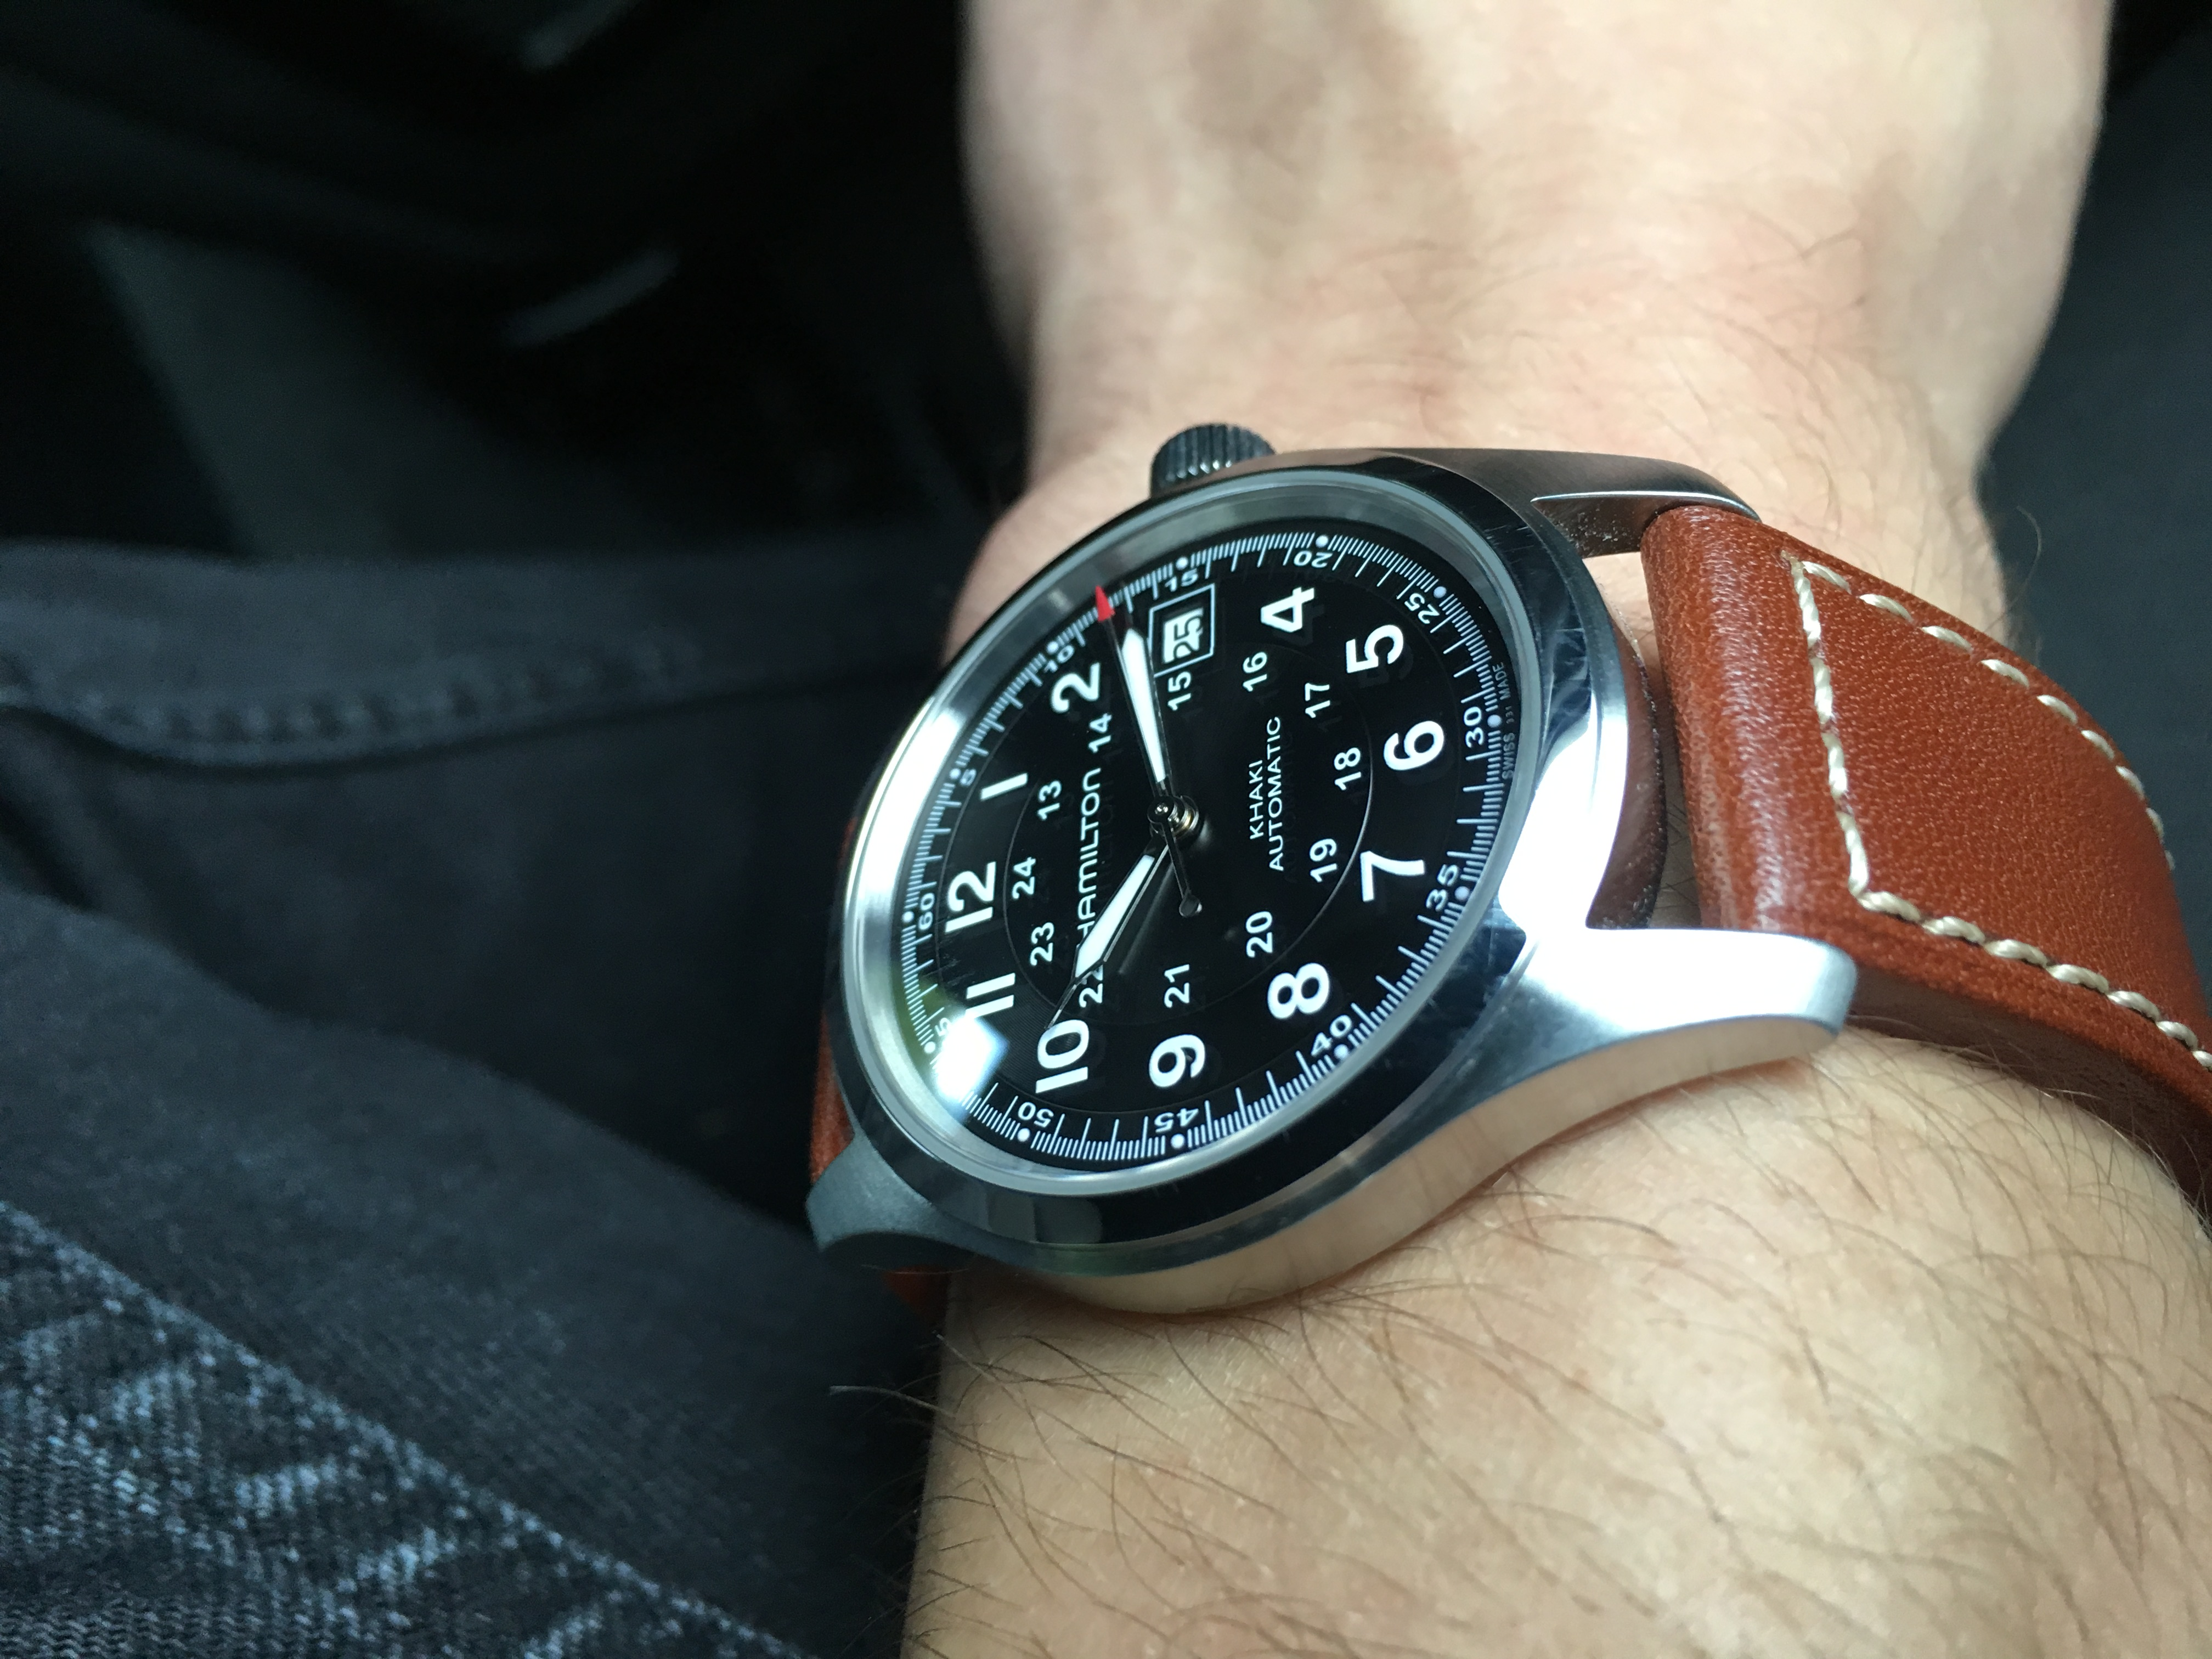 ... Ive ordered watches from them before and there always well packaged and  delivered extremely fast! The Hamilton khaki field automatic ... 79895d4bf9